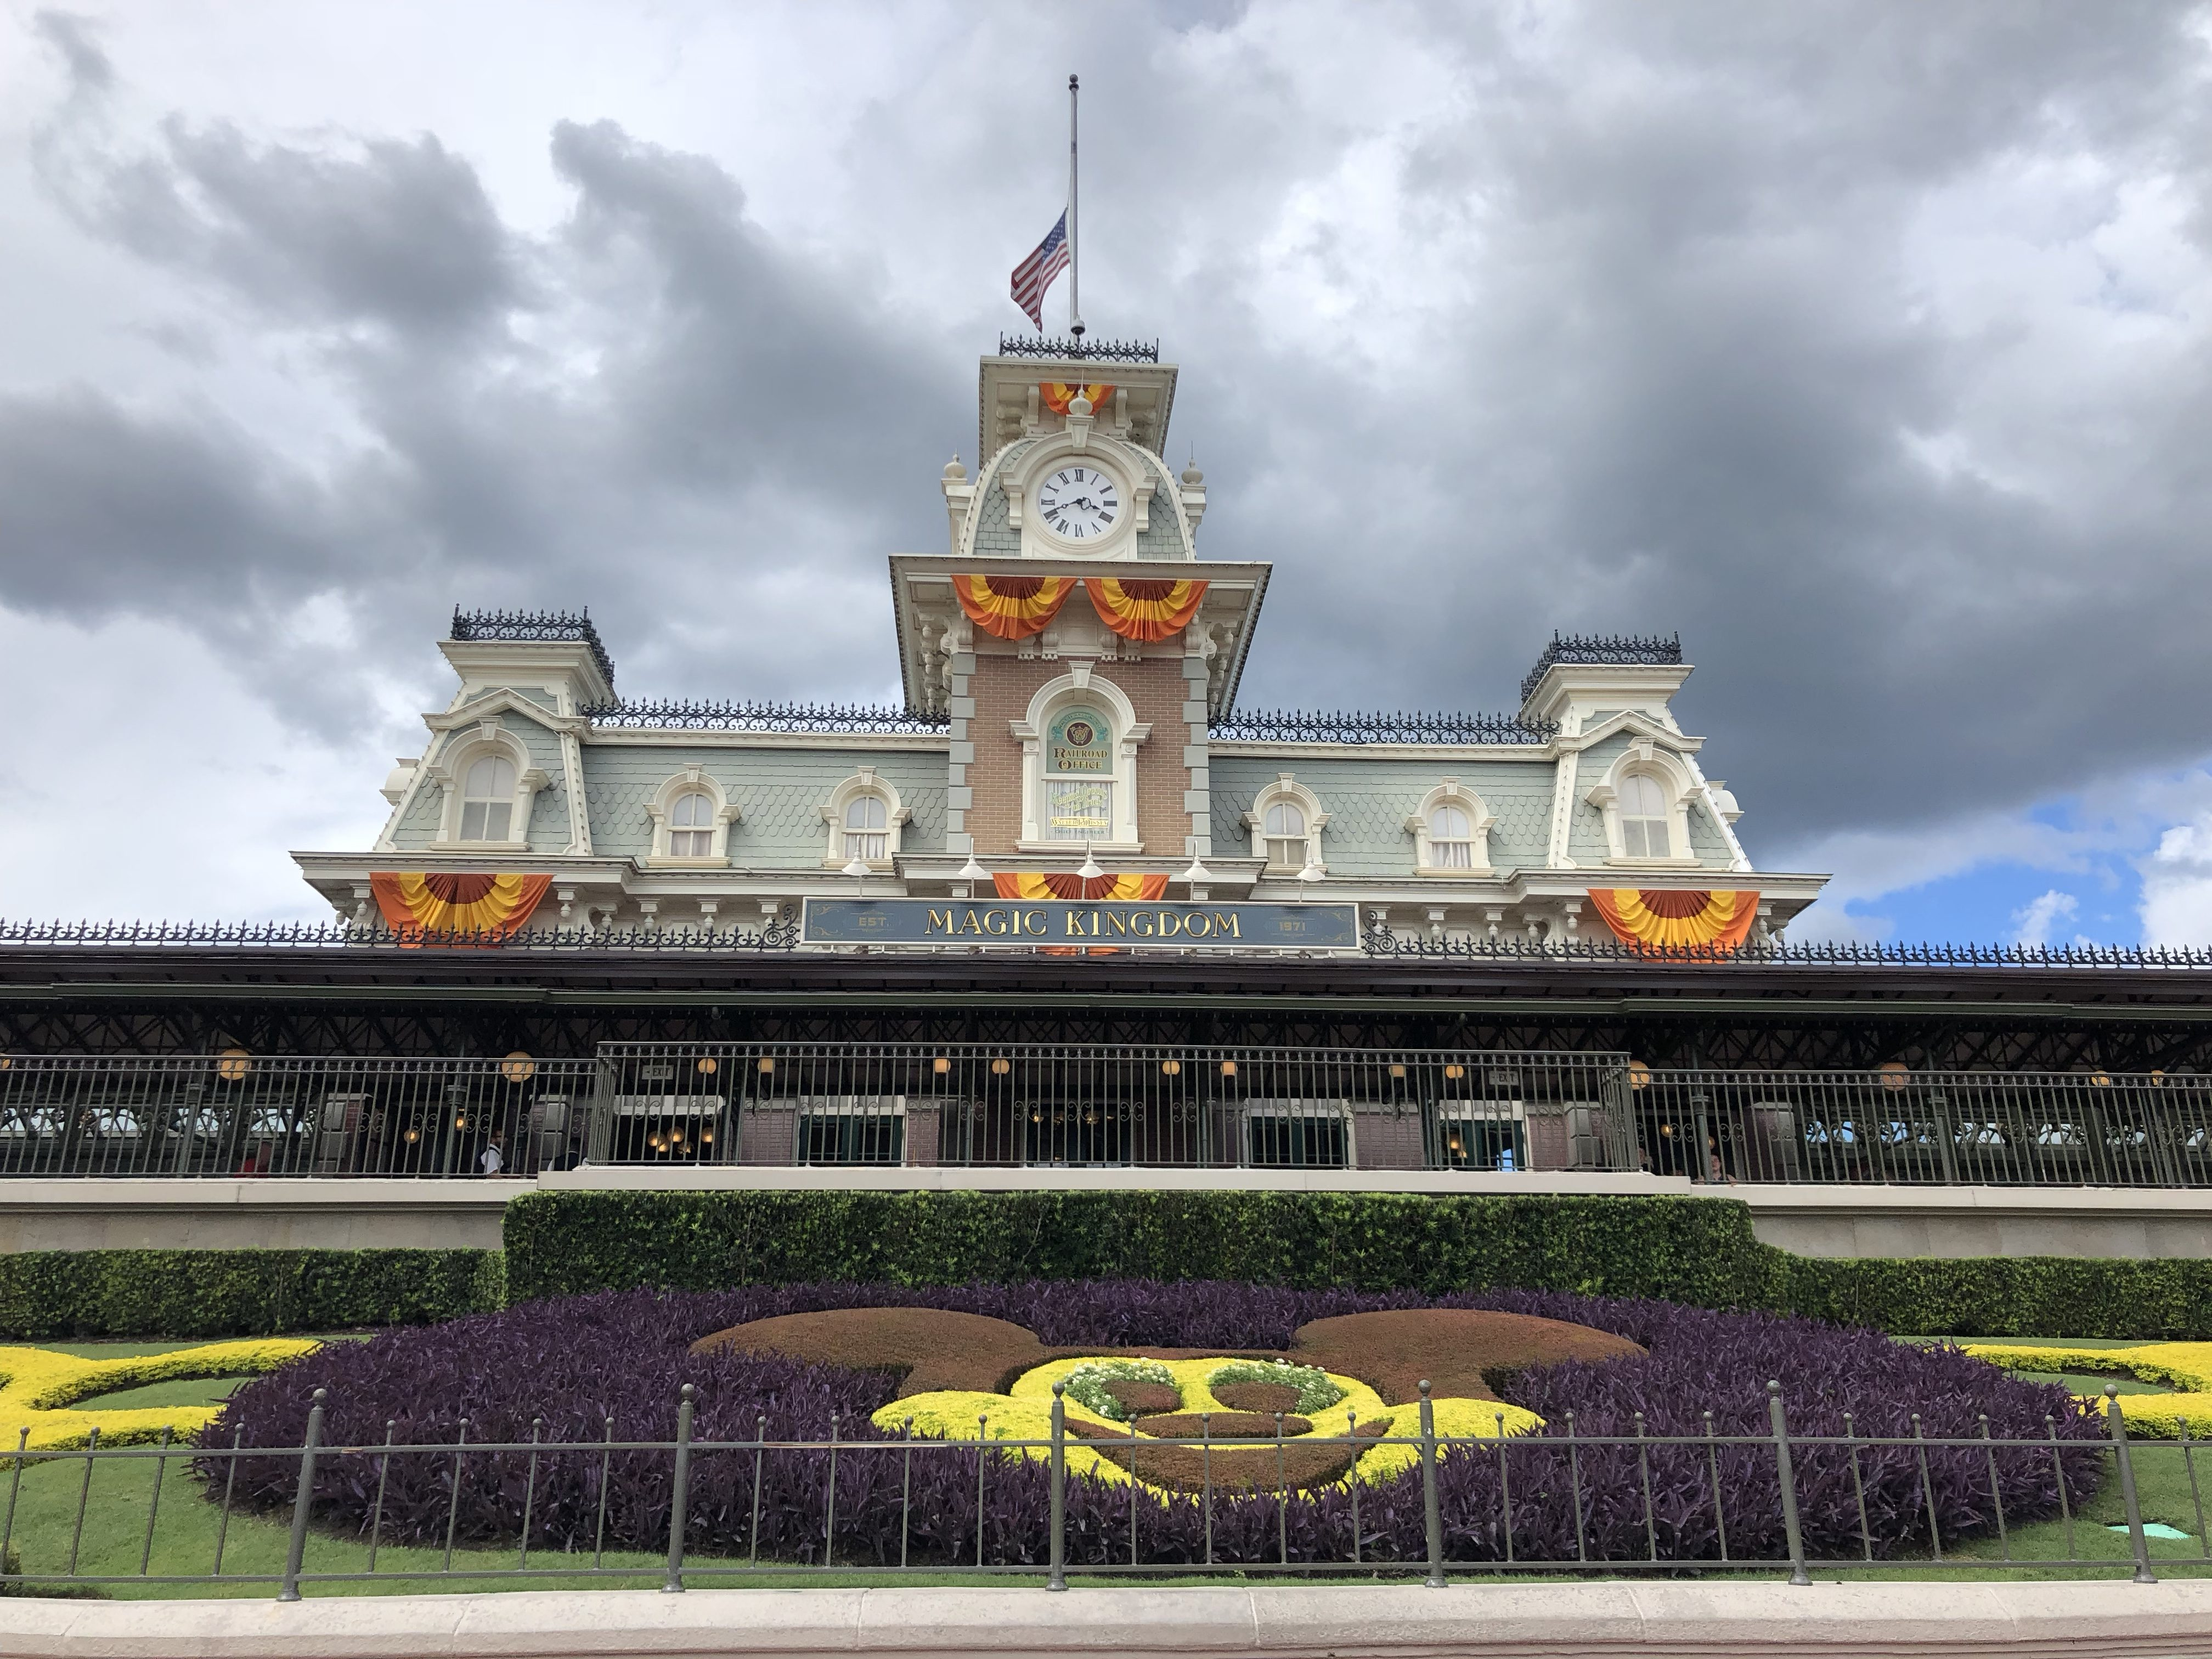 rain clouds abouve the train station at the entrance to the Magic Kingsom at Walt Disney World